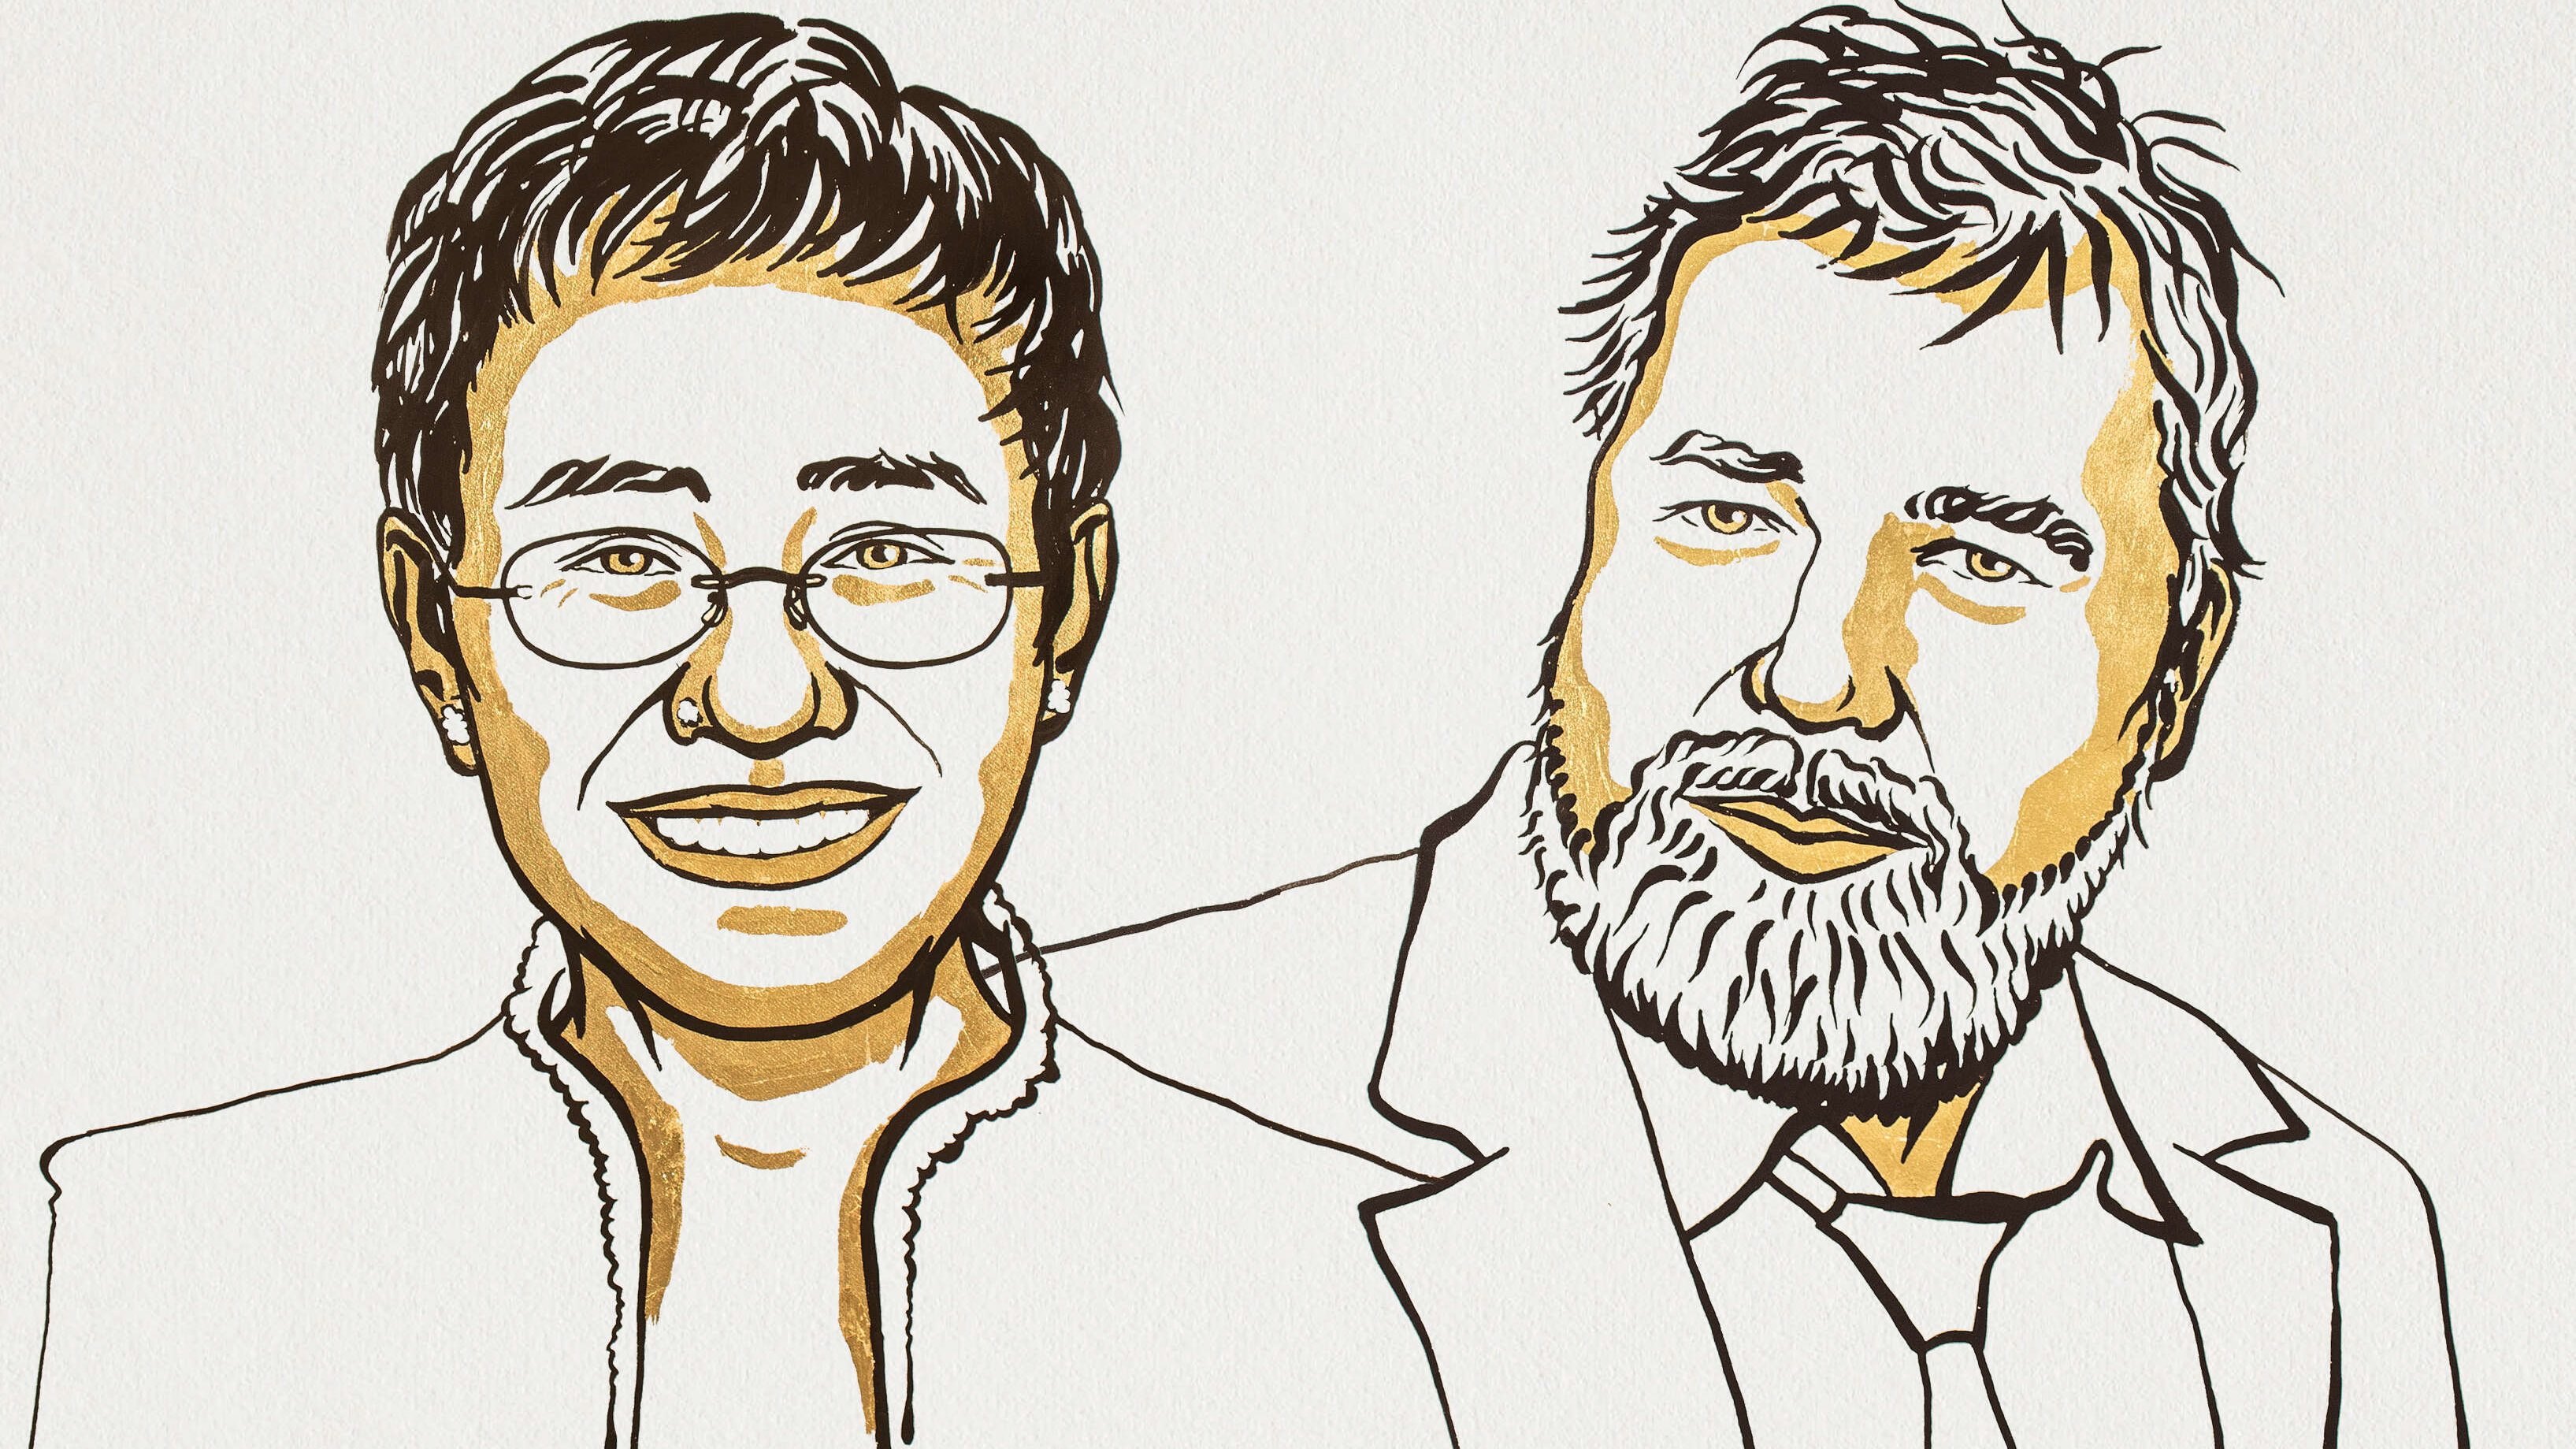 Maria Ressa and Dmitry Muratov, winners of the 2021 Nobel Peace Prize